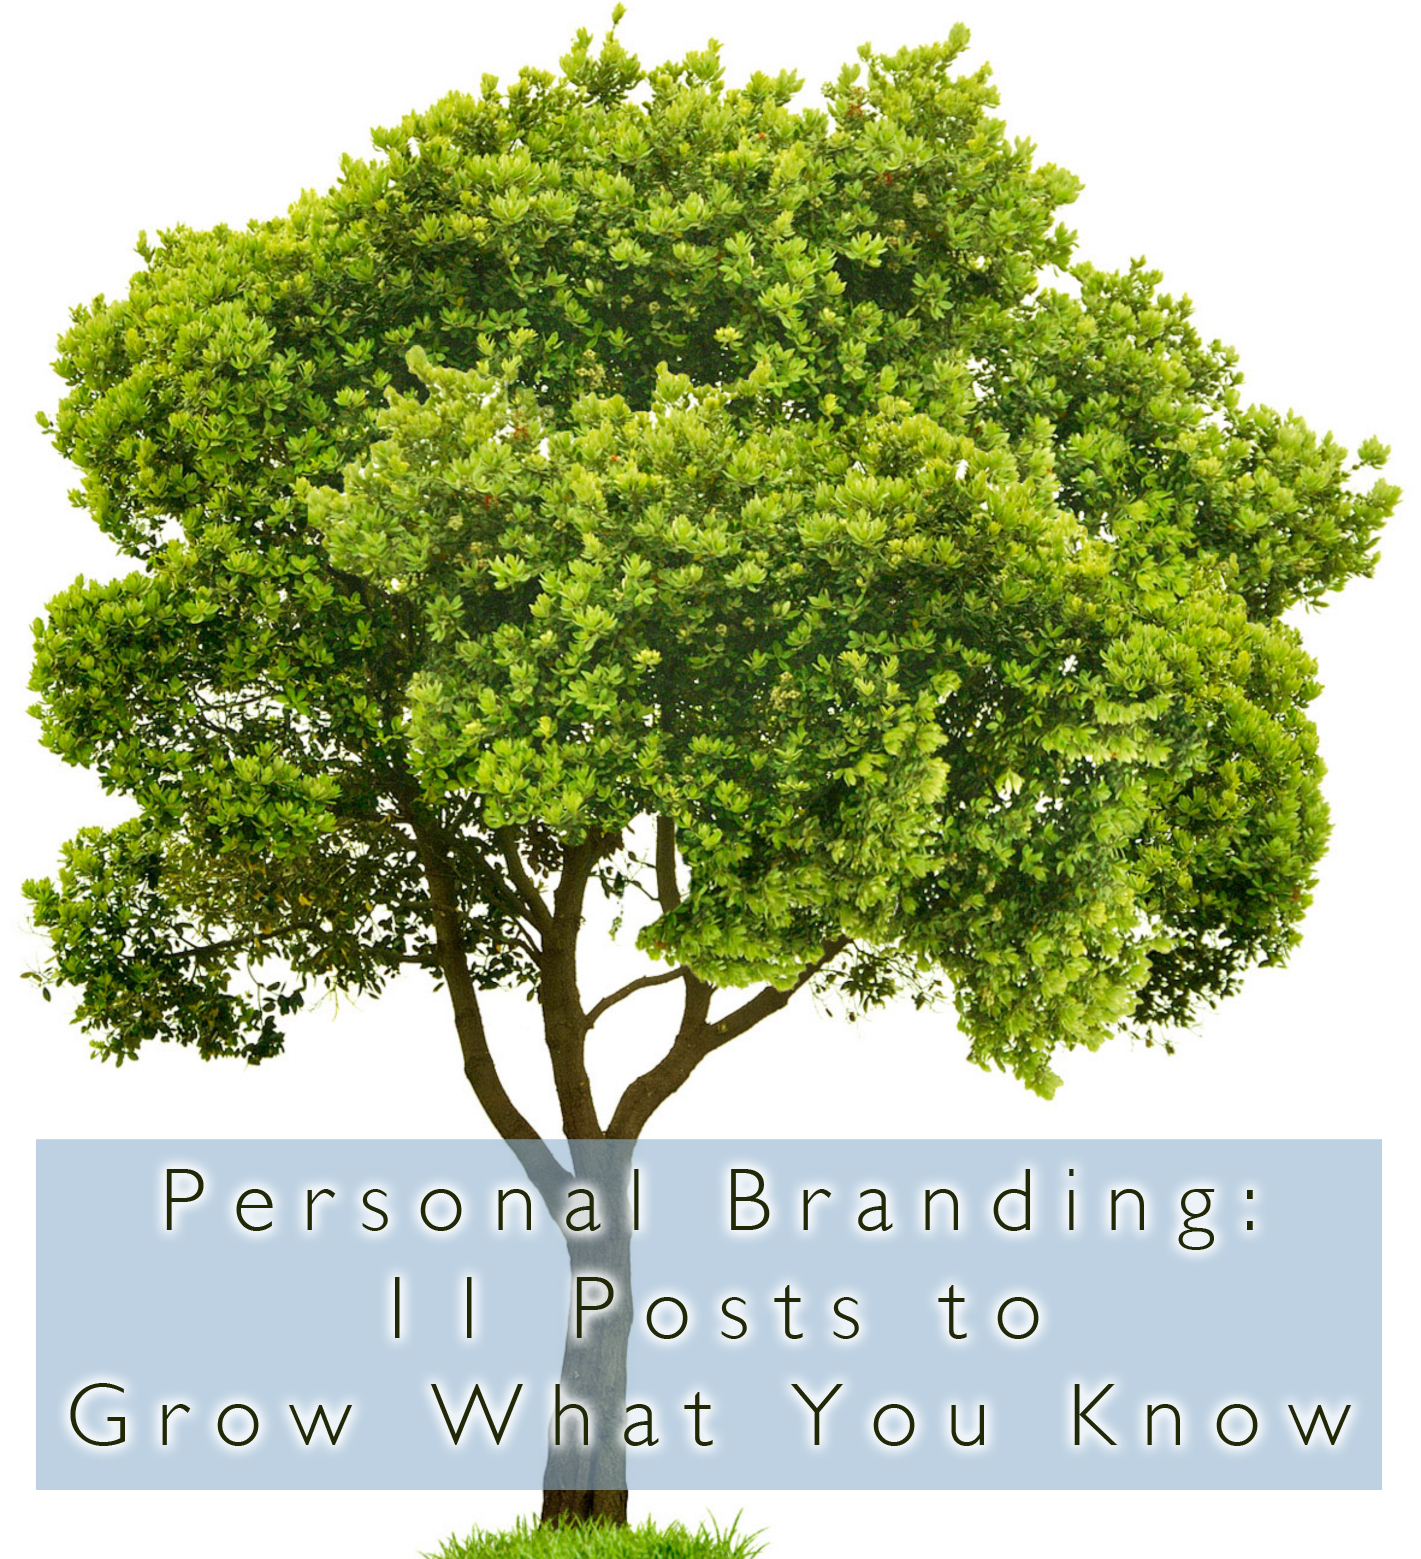 Personal Branding: 11 Posts to Grow What You Know